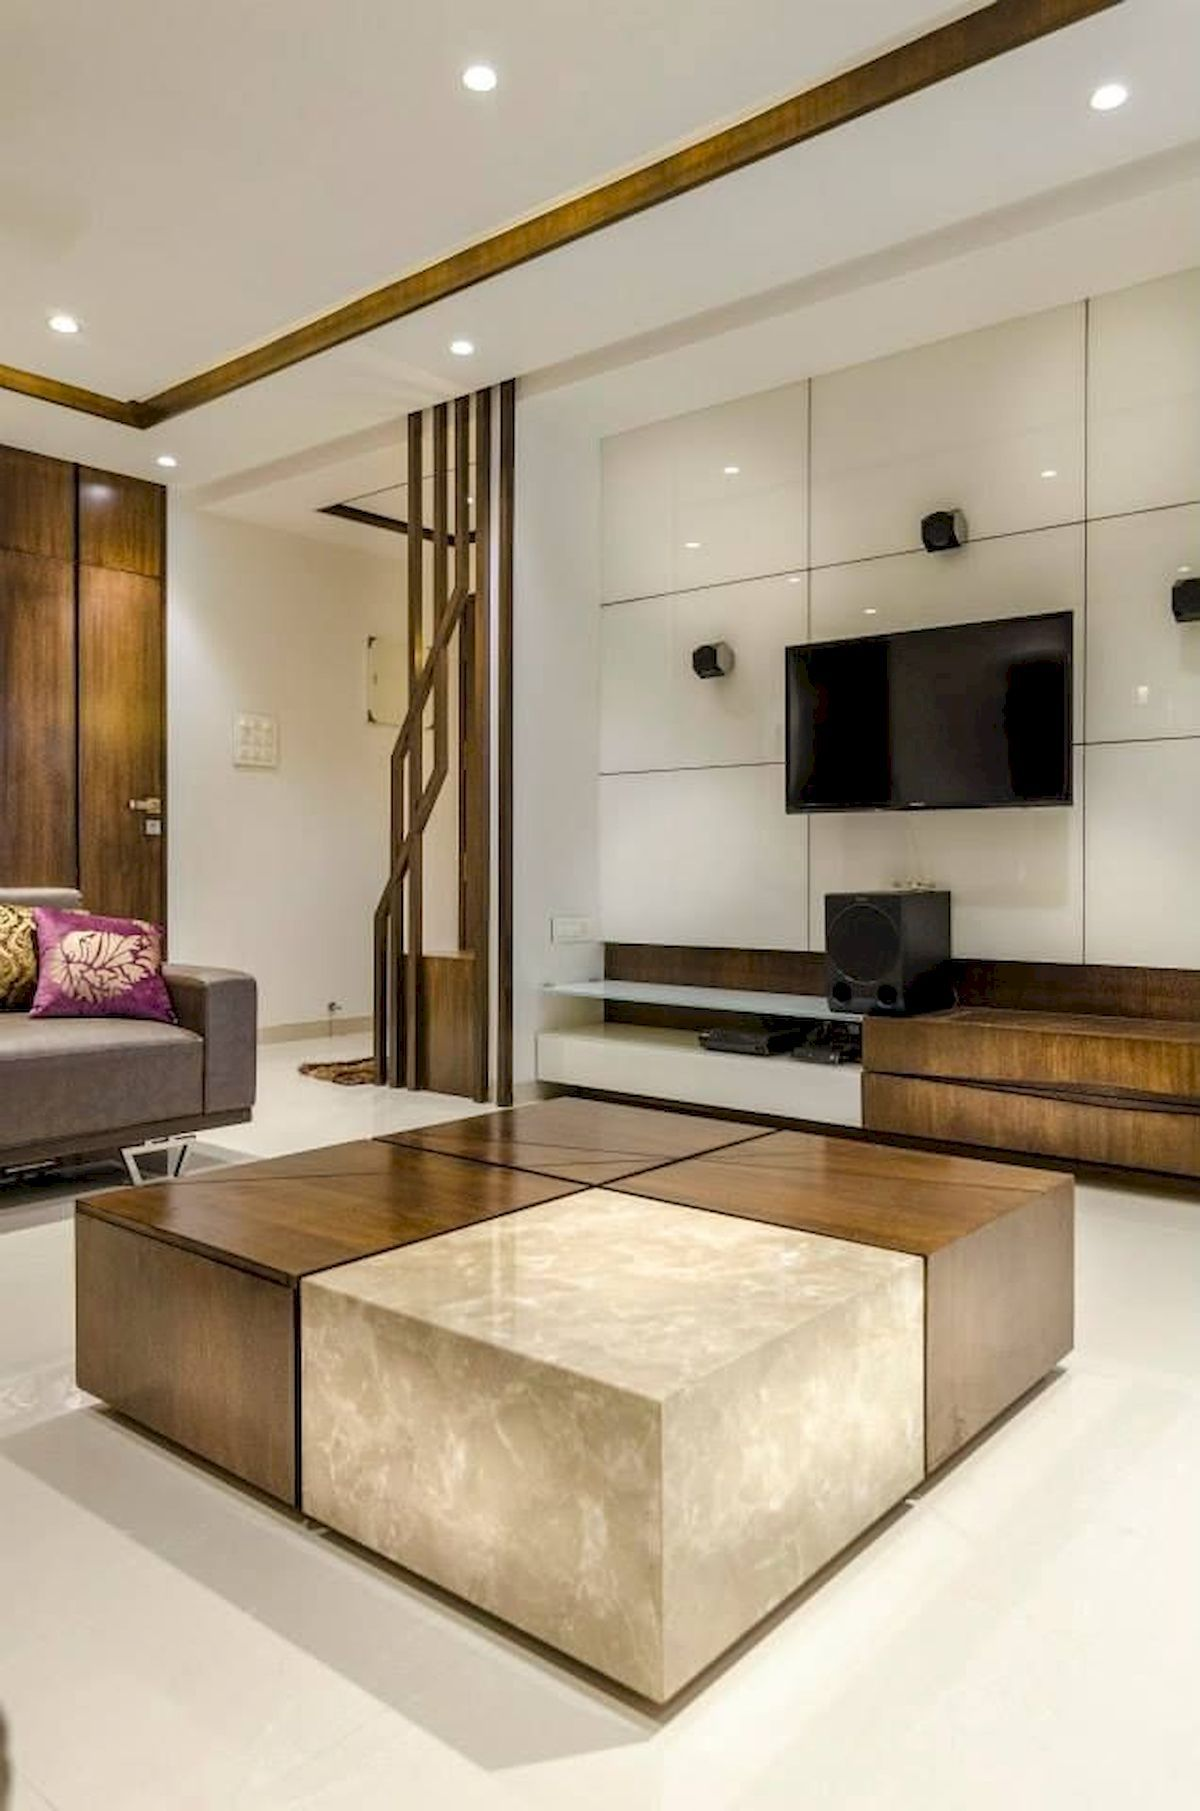 Partition idea plus tv unit also mighty clever tips false ceiling restaurant design blogs rh pinterest